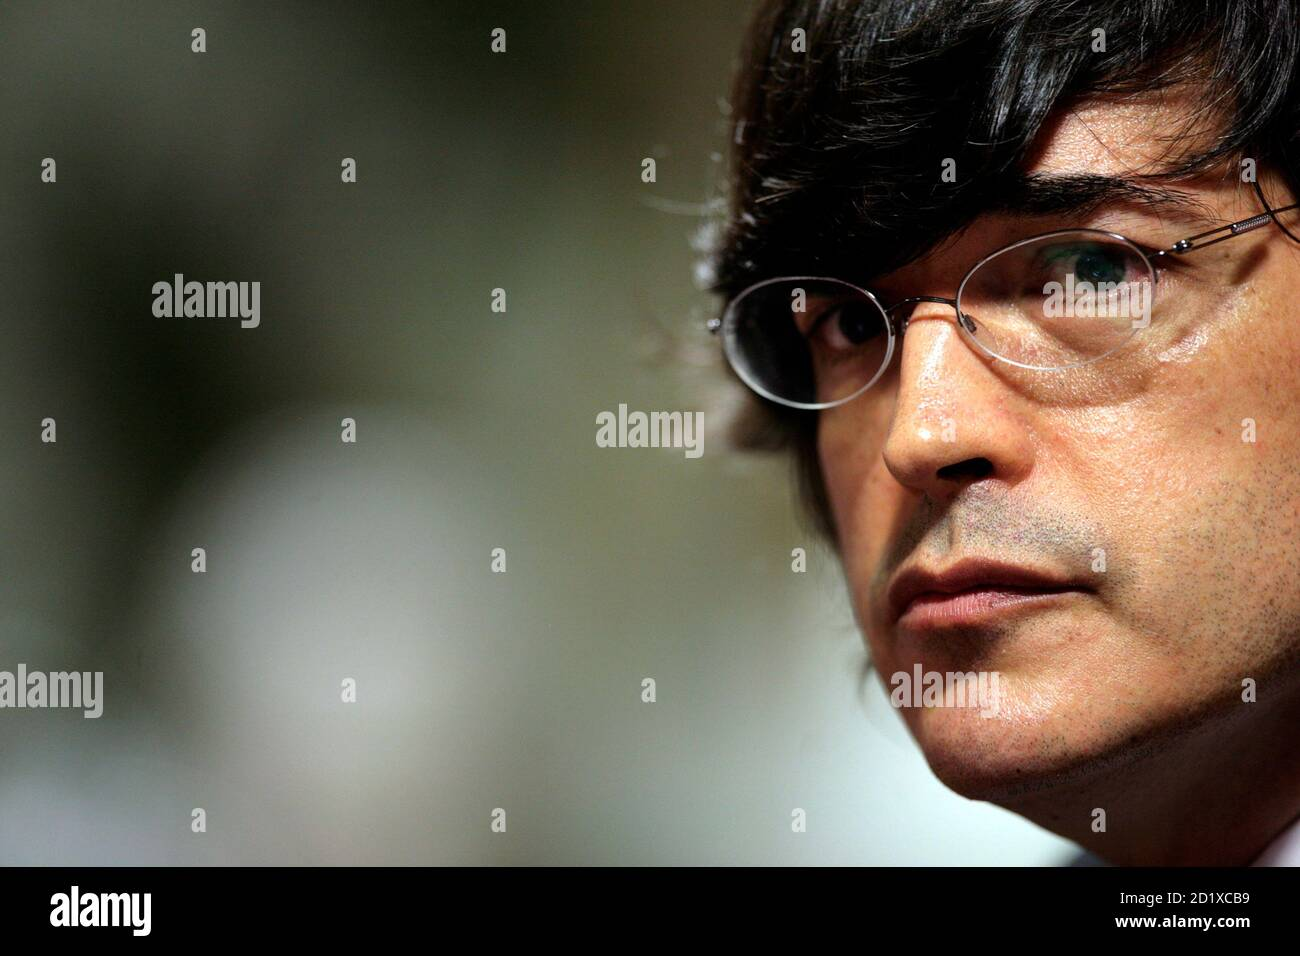 Peruvian Novelist And Tv Talk Show Host Jaime Bayly Talks To The Press During A Conference In Lima February 17 2010 Bayly Said He Wants To Be A Presidential Candidate For Peru S El periodista contó que tuvo una propuesta el conductor de televisión y escritor jaime bayly regresará a las pantallas peruanas. alamy